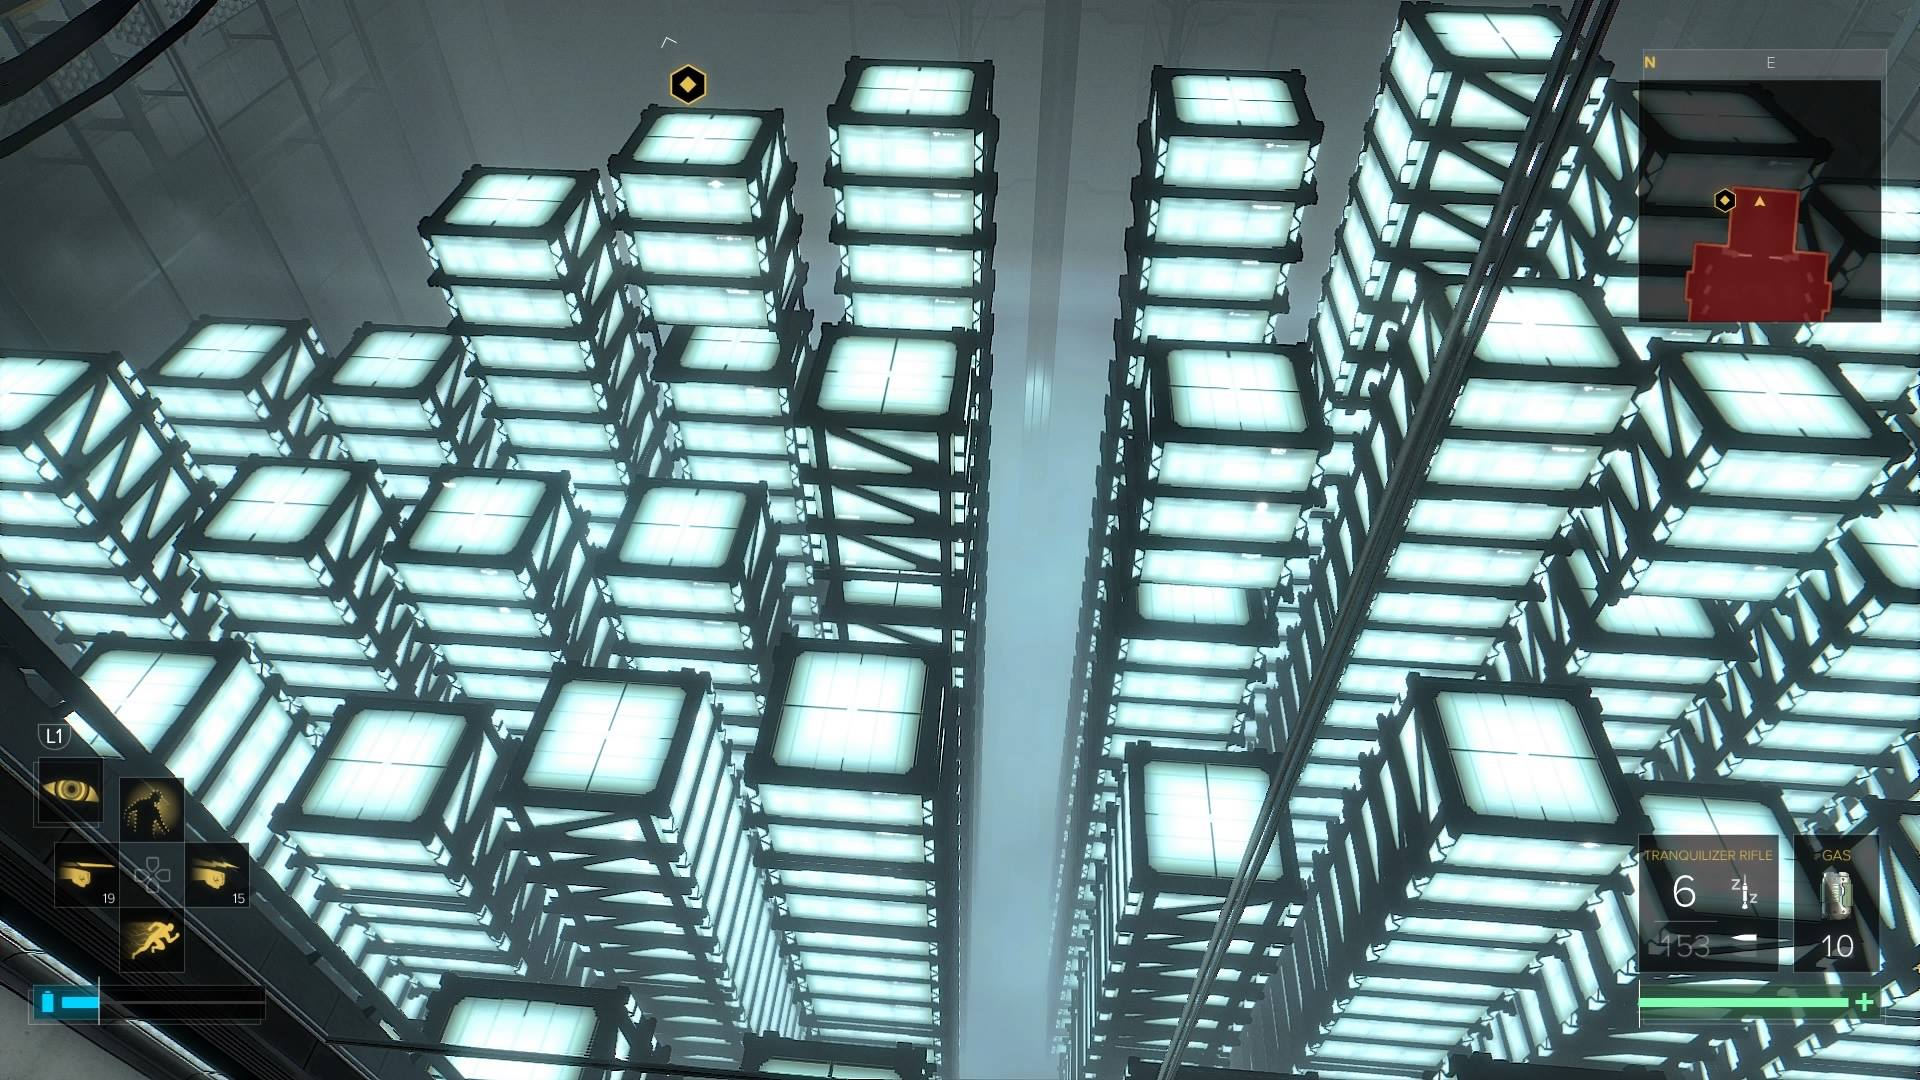 Deus Ex Corporate Data